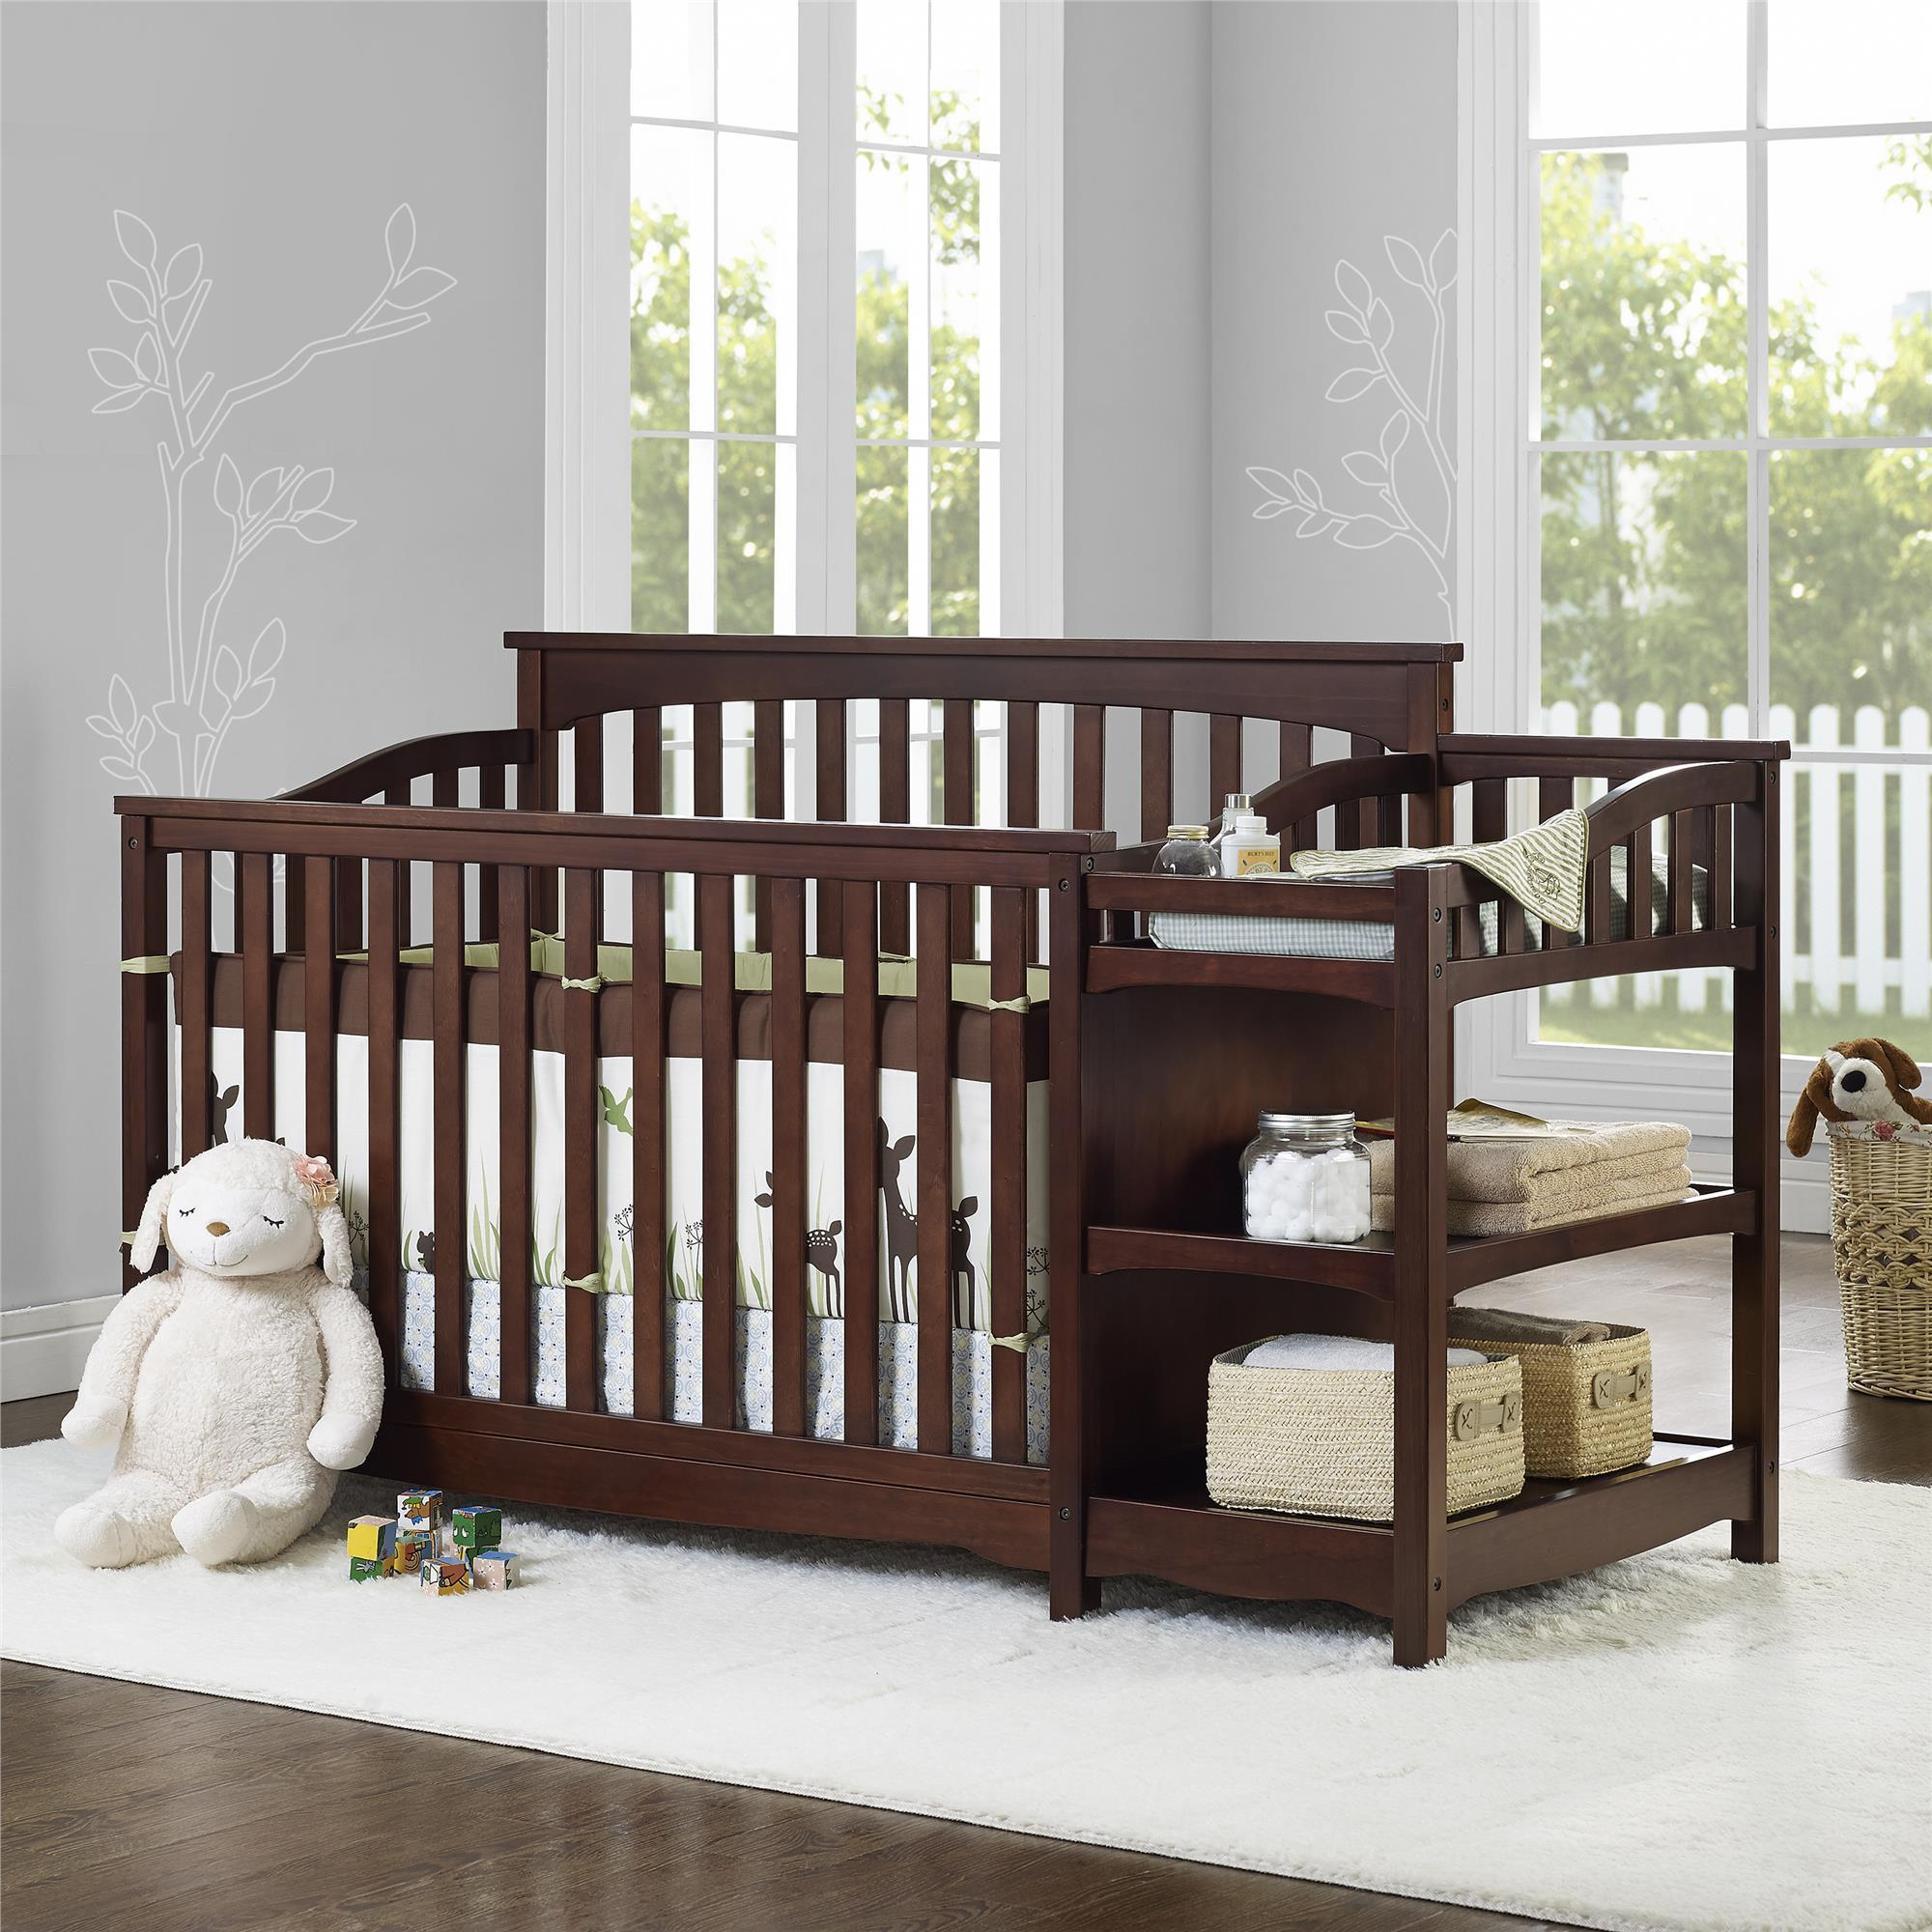 Baby Relax Bailey Fixed-Side Crib and Changer, Espresso